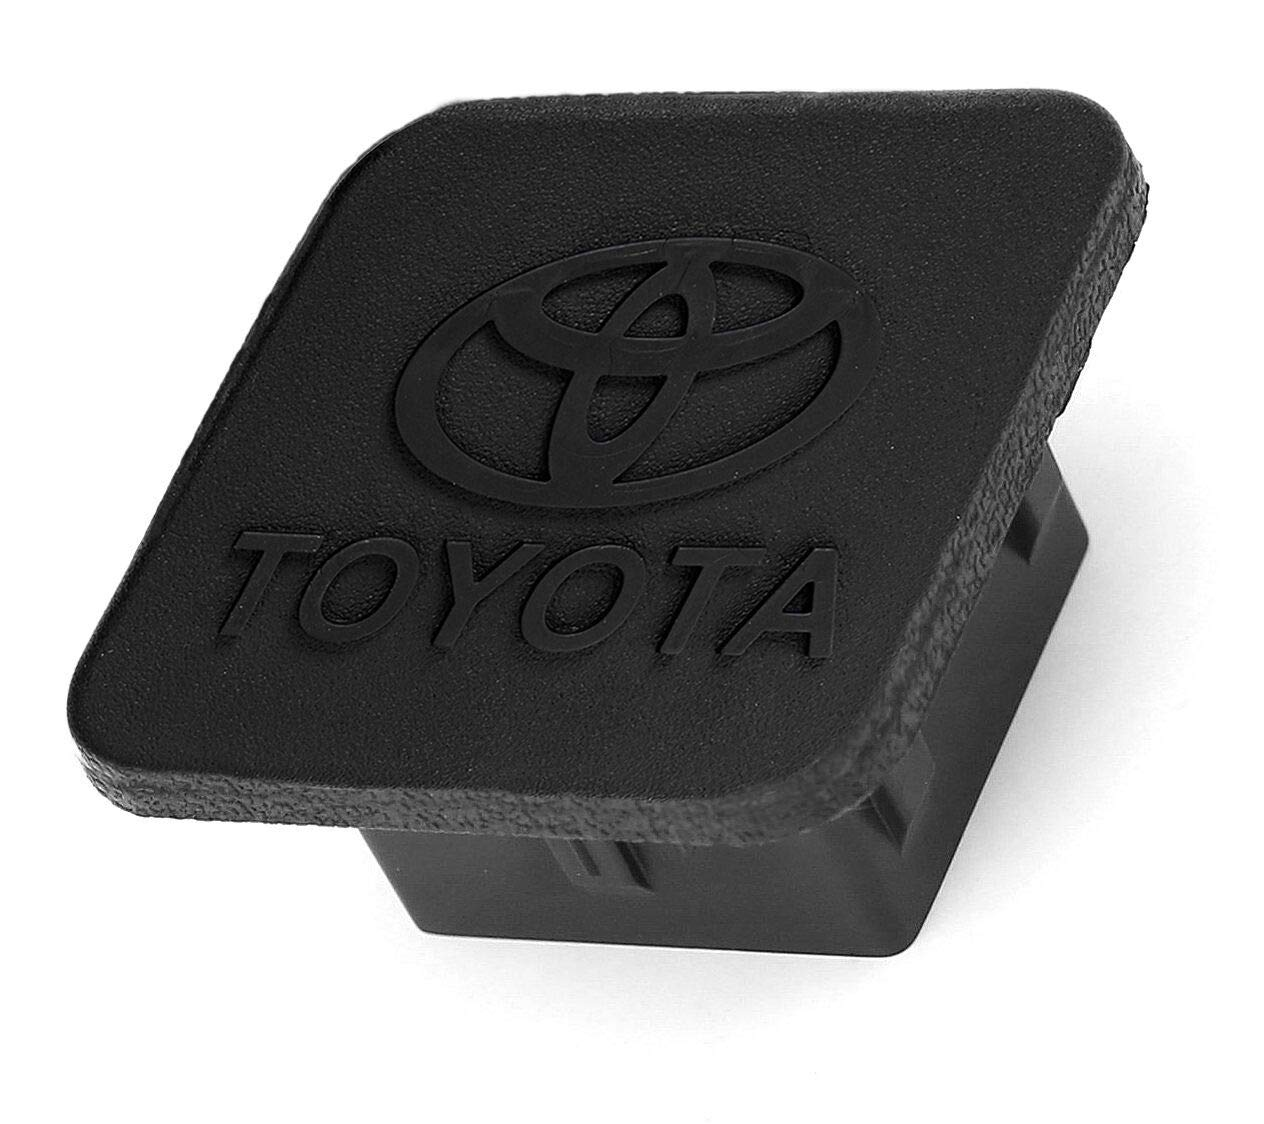 Black BoJie Car Trailer Hitch Cover,with Toyota Logo for Toyota Accessories PT228-35960-HP Receiver Tube Hitch Plug for Toyota